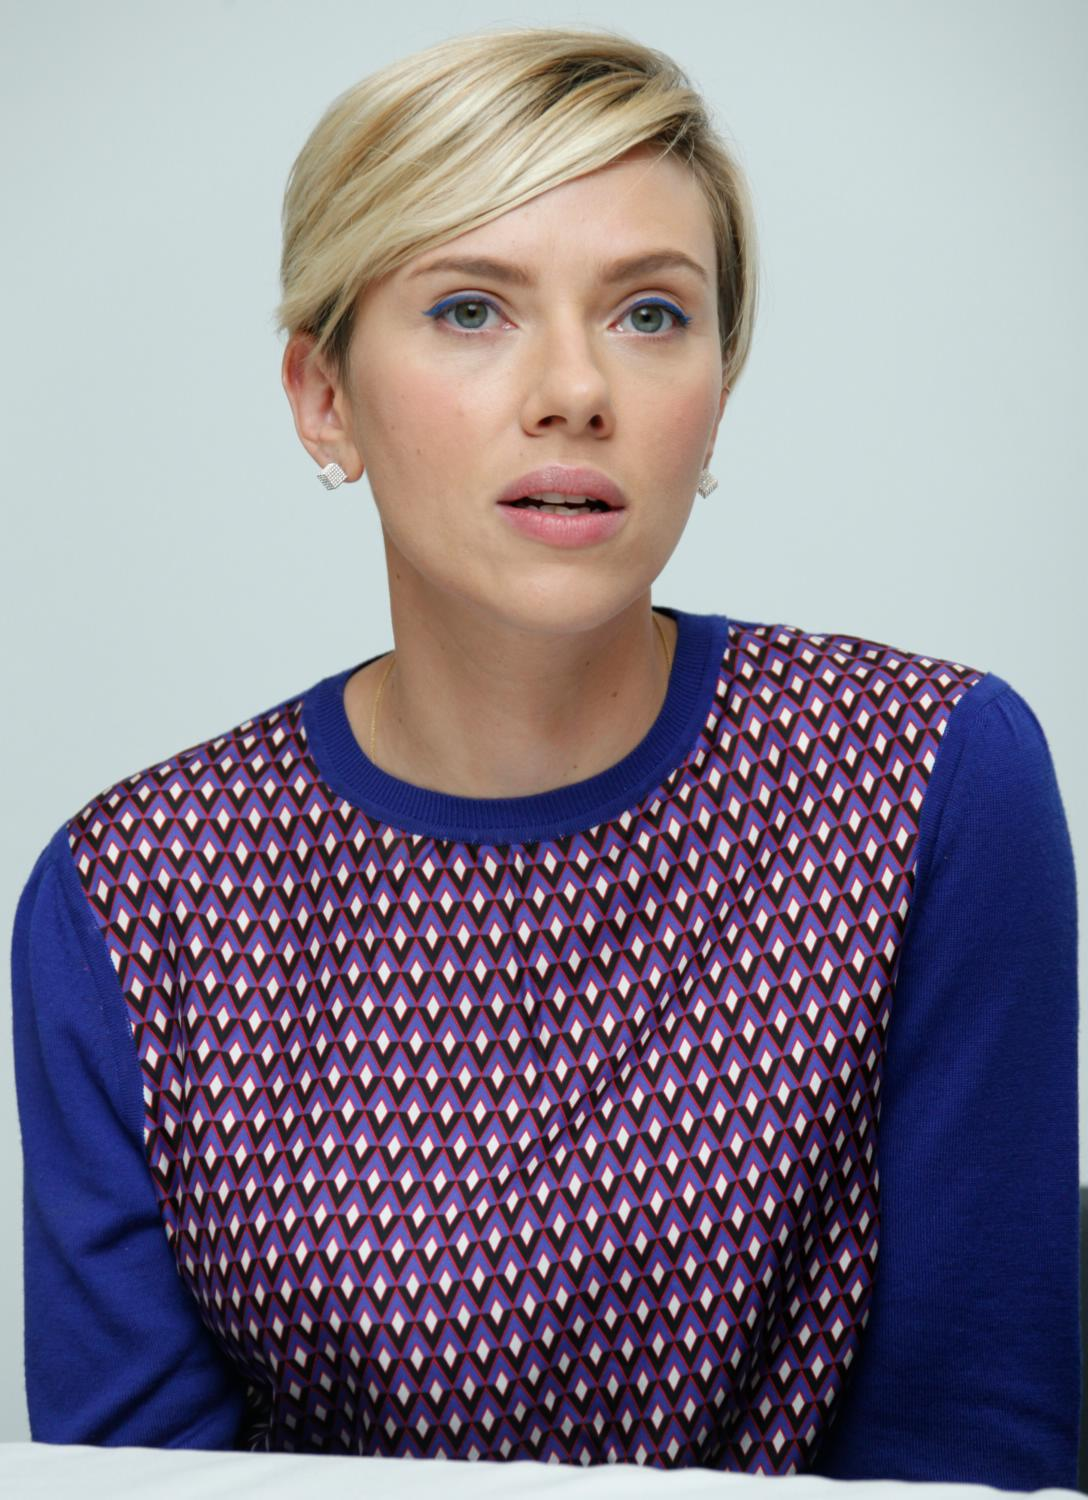 Scarlett Johansson at The Avengers: Age of Ultron Press Conference-3